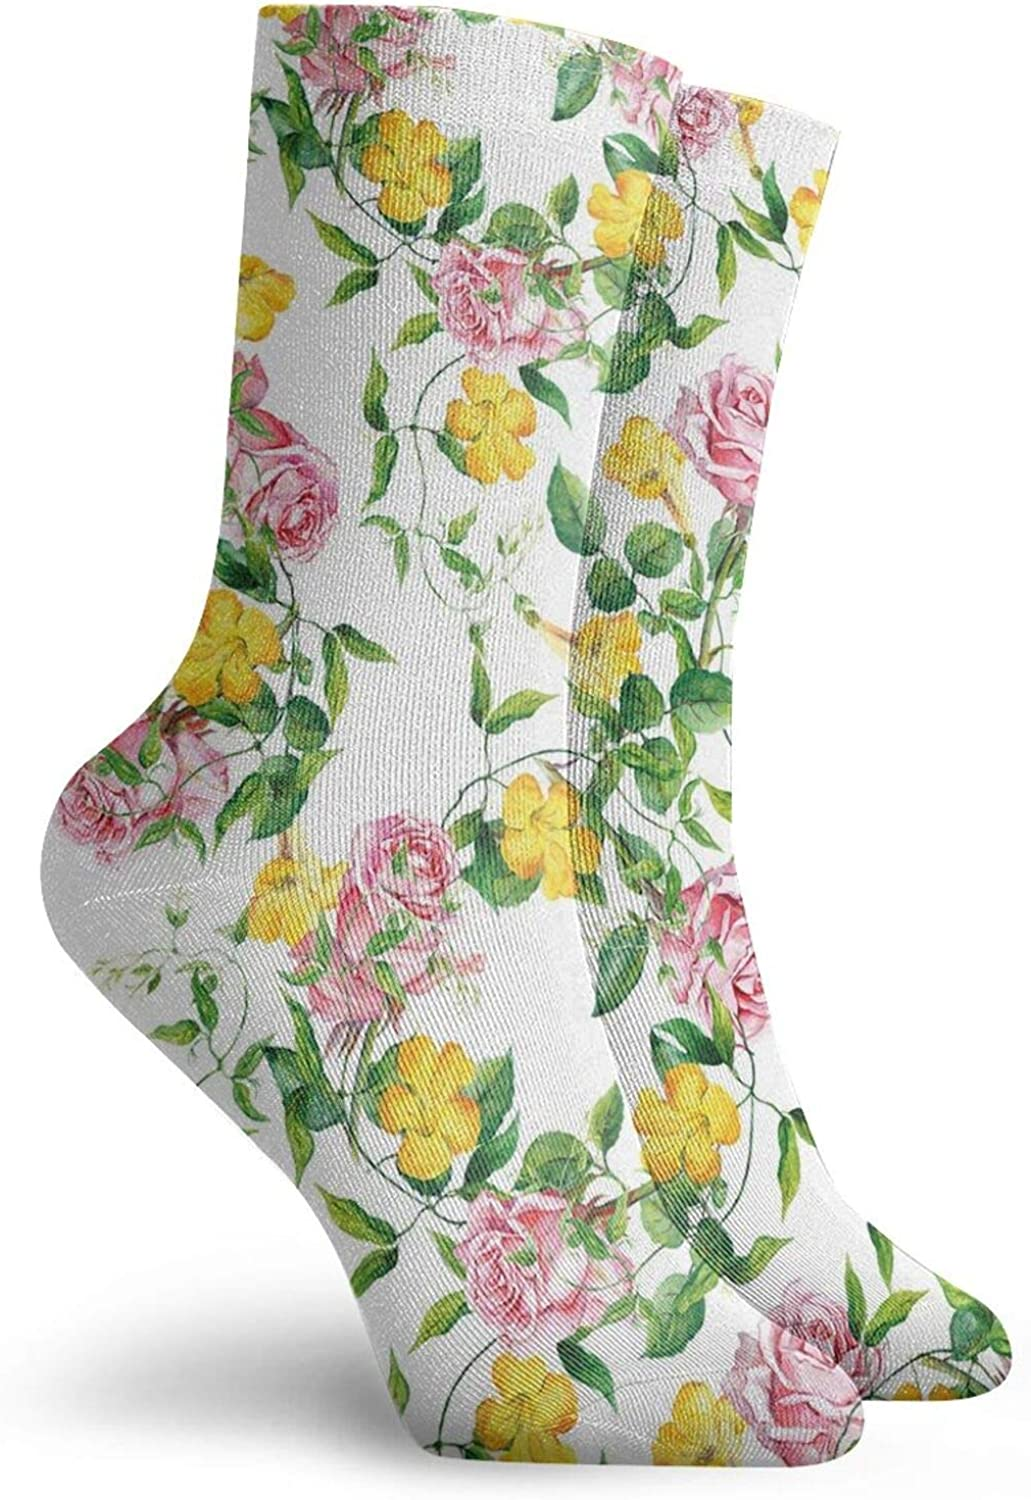 Compression High Socks-Flourishing Bindweed And Pink Roses Leaves Botanical Nature Best for Running,Athletic,Hiking,Travel,Flight